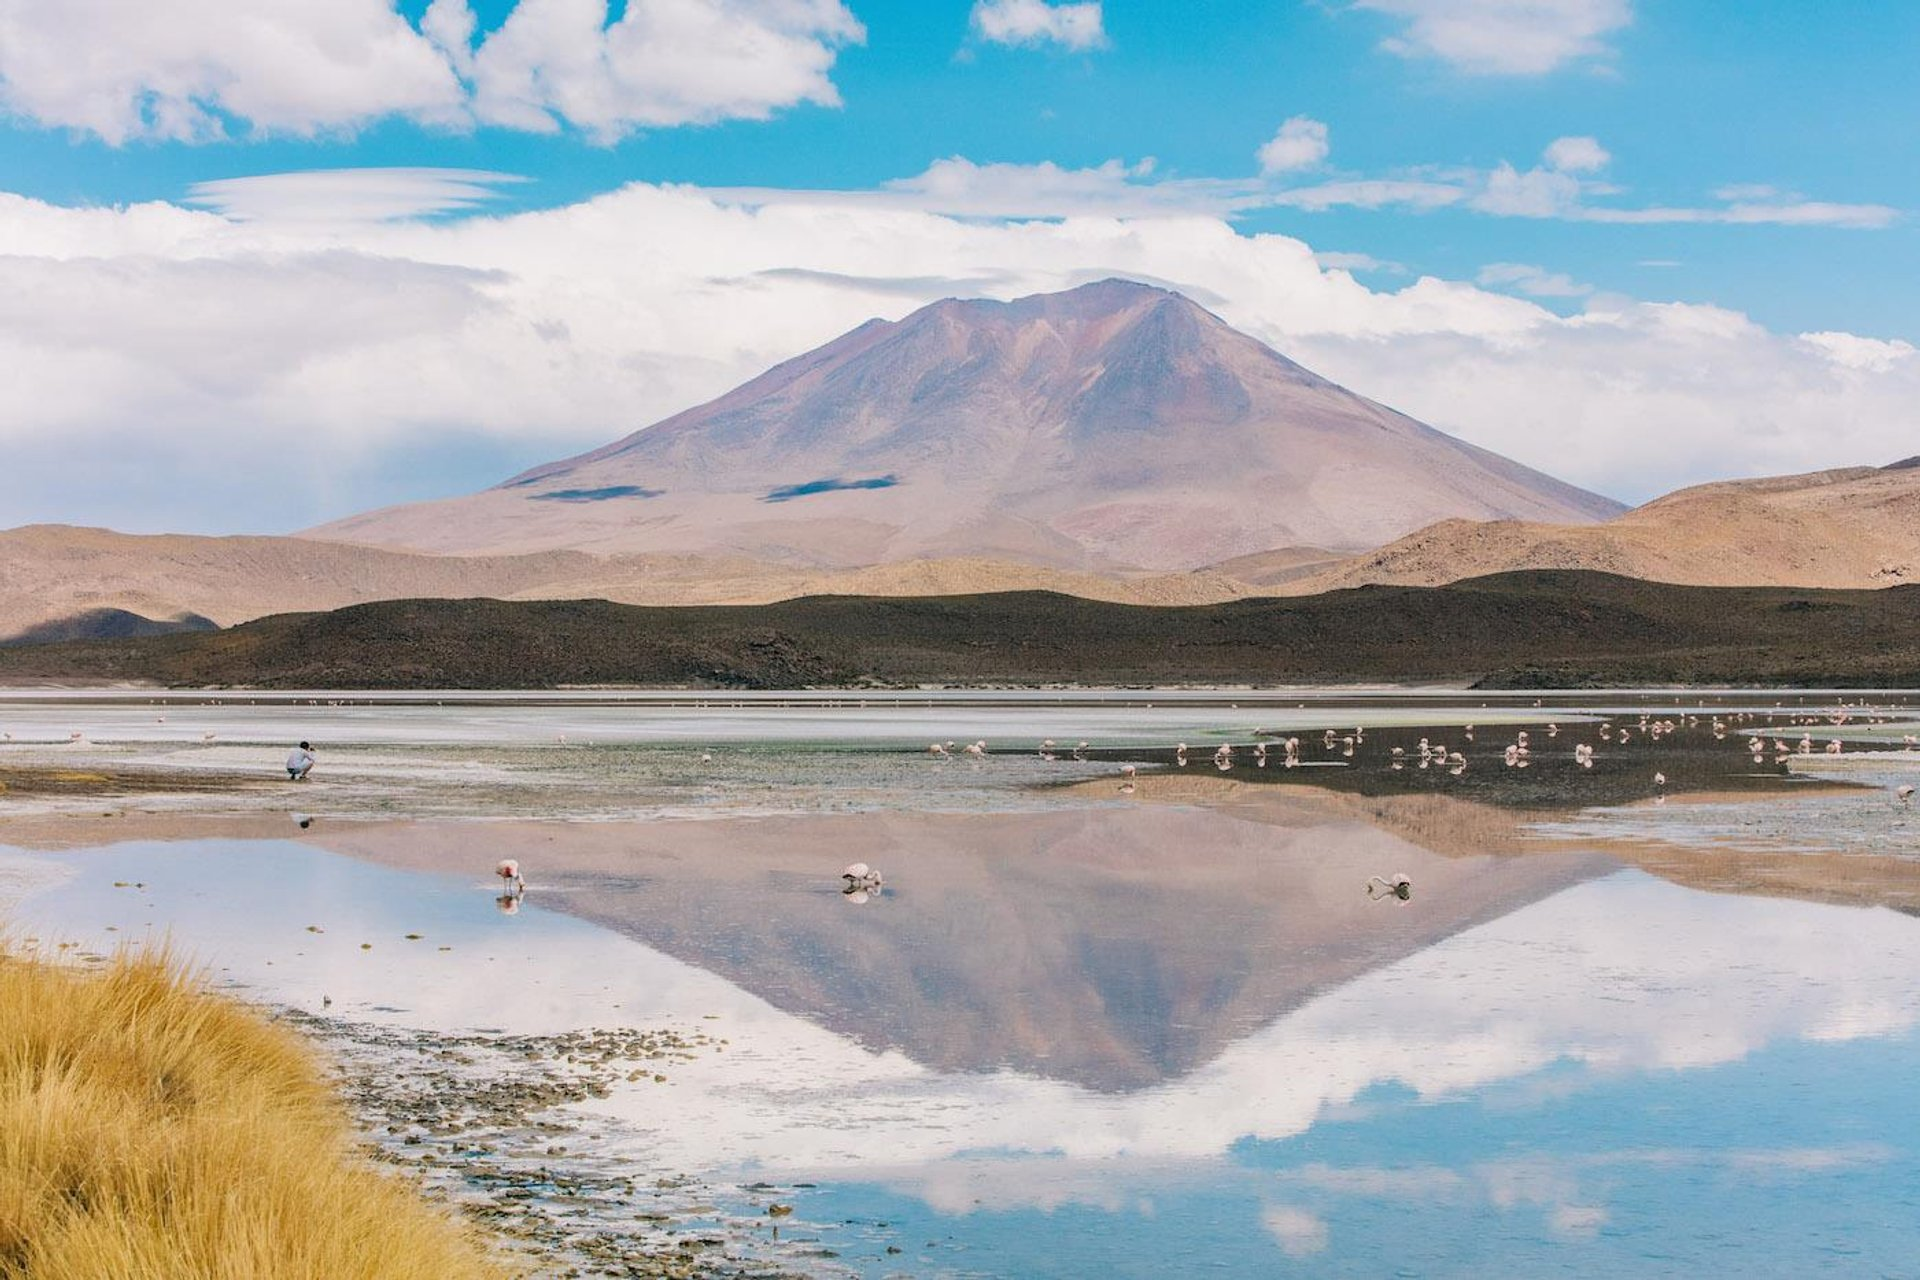 Lake at Salt Flats or Salar de Uyuni in Bolivia - Best Season